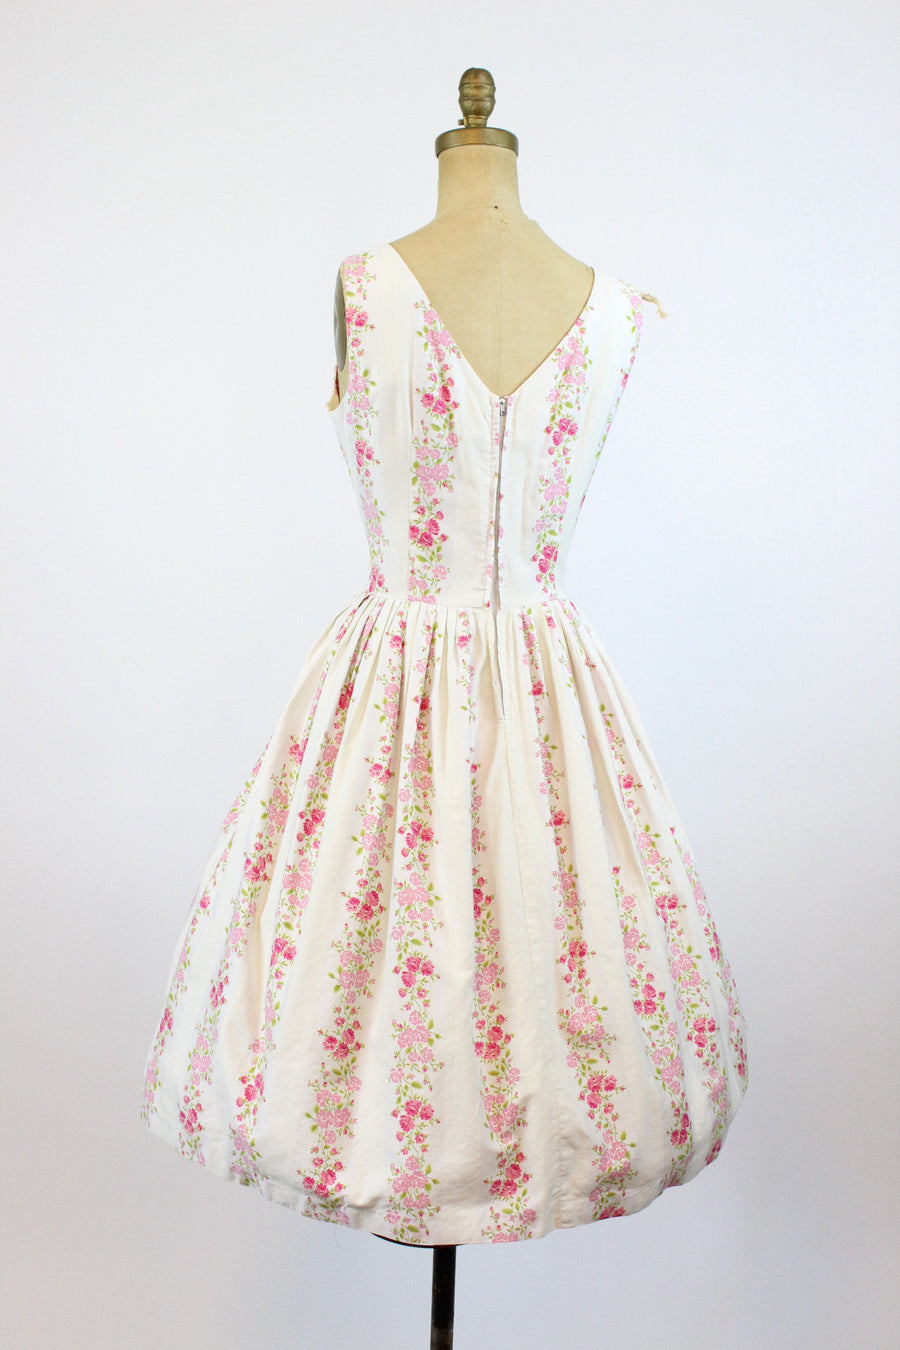 1950s rose print cotton dress medium | vintage floral dress | new in